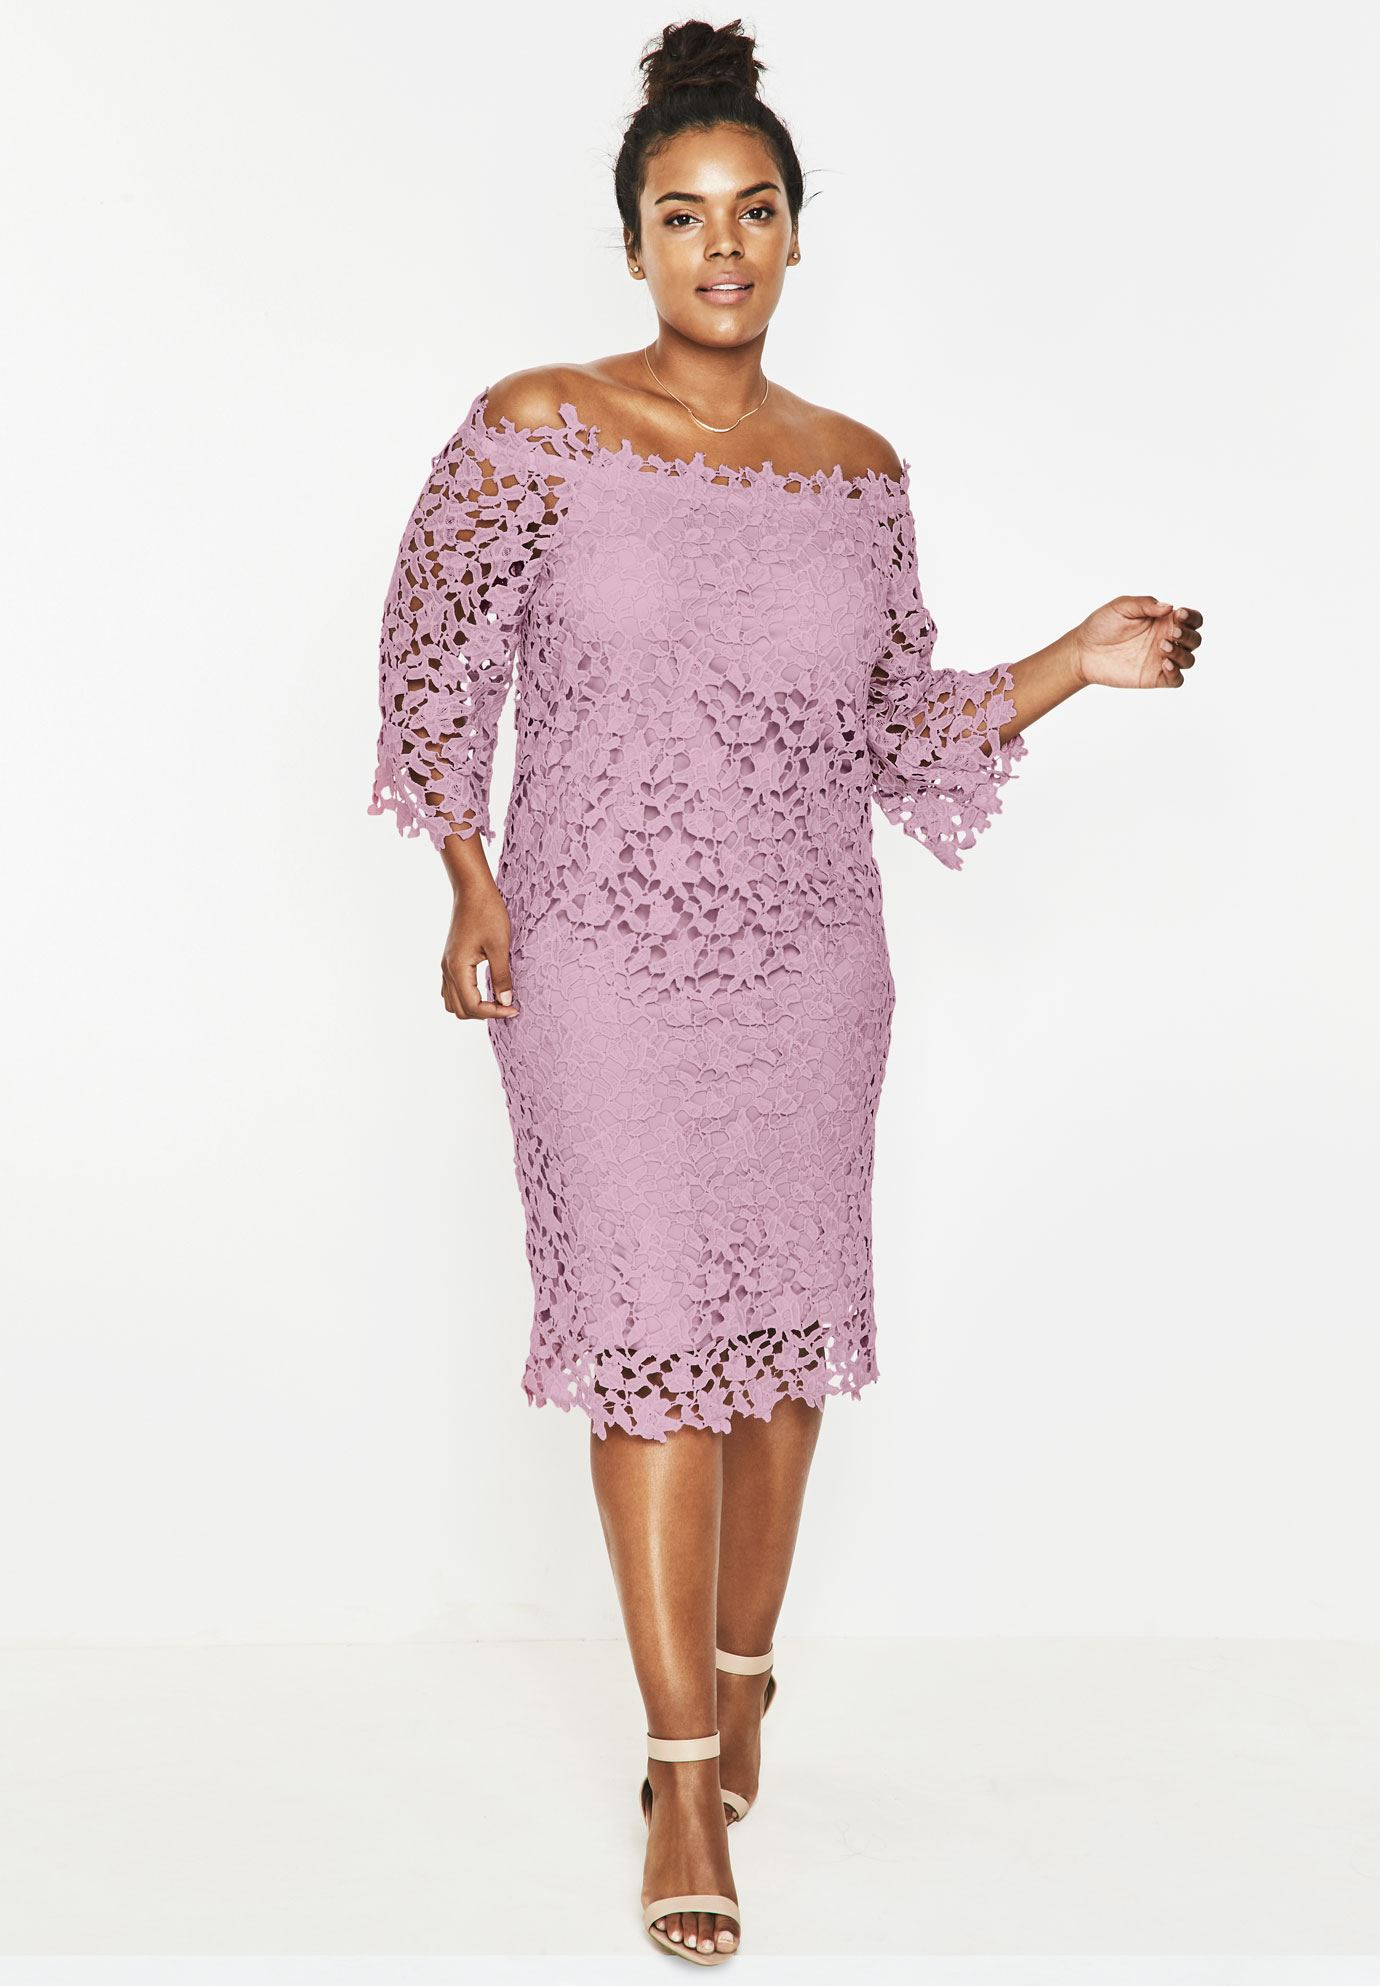 Free shipping on plus-size dresses at lindsayclewisirah.gq Shop plus-size dresses in the latest styles and silhouettes. Totally free shipping and returns. Skip navigation. Chi Chi London Lace Dip High/Low Dress (Plus Size) $ New! Maggy London Velvet Asymmetrical Sheath Dress (Plus Size.